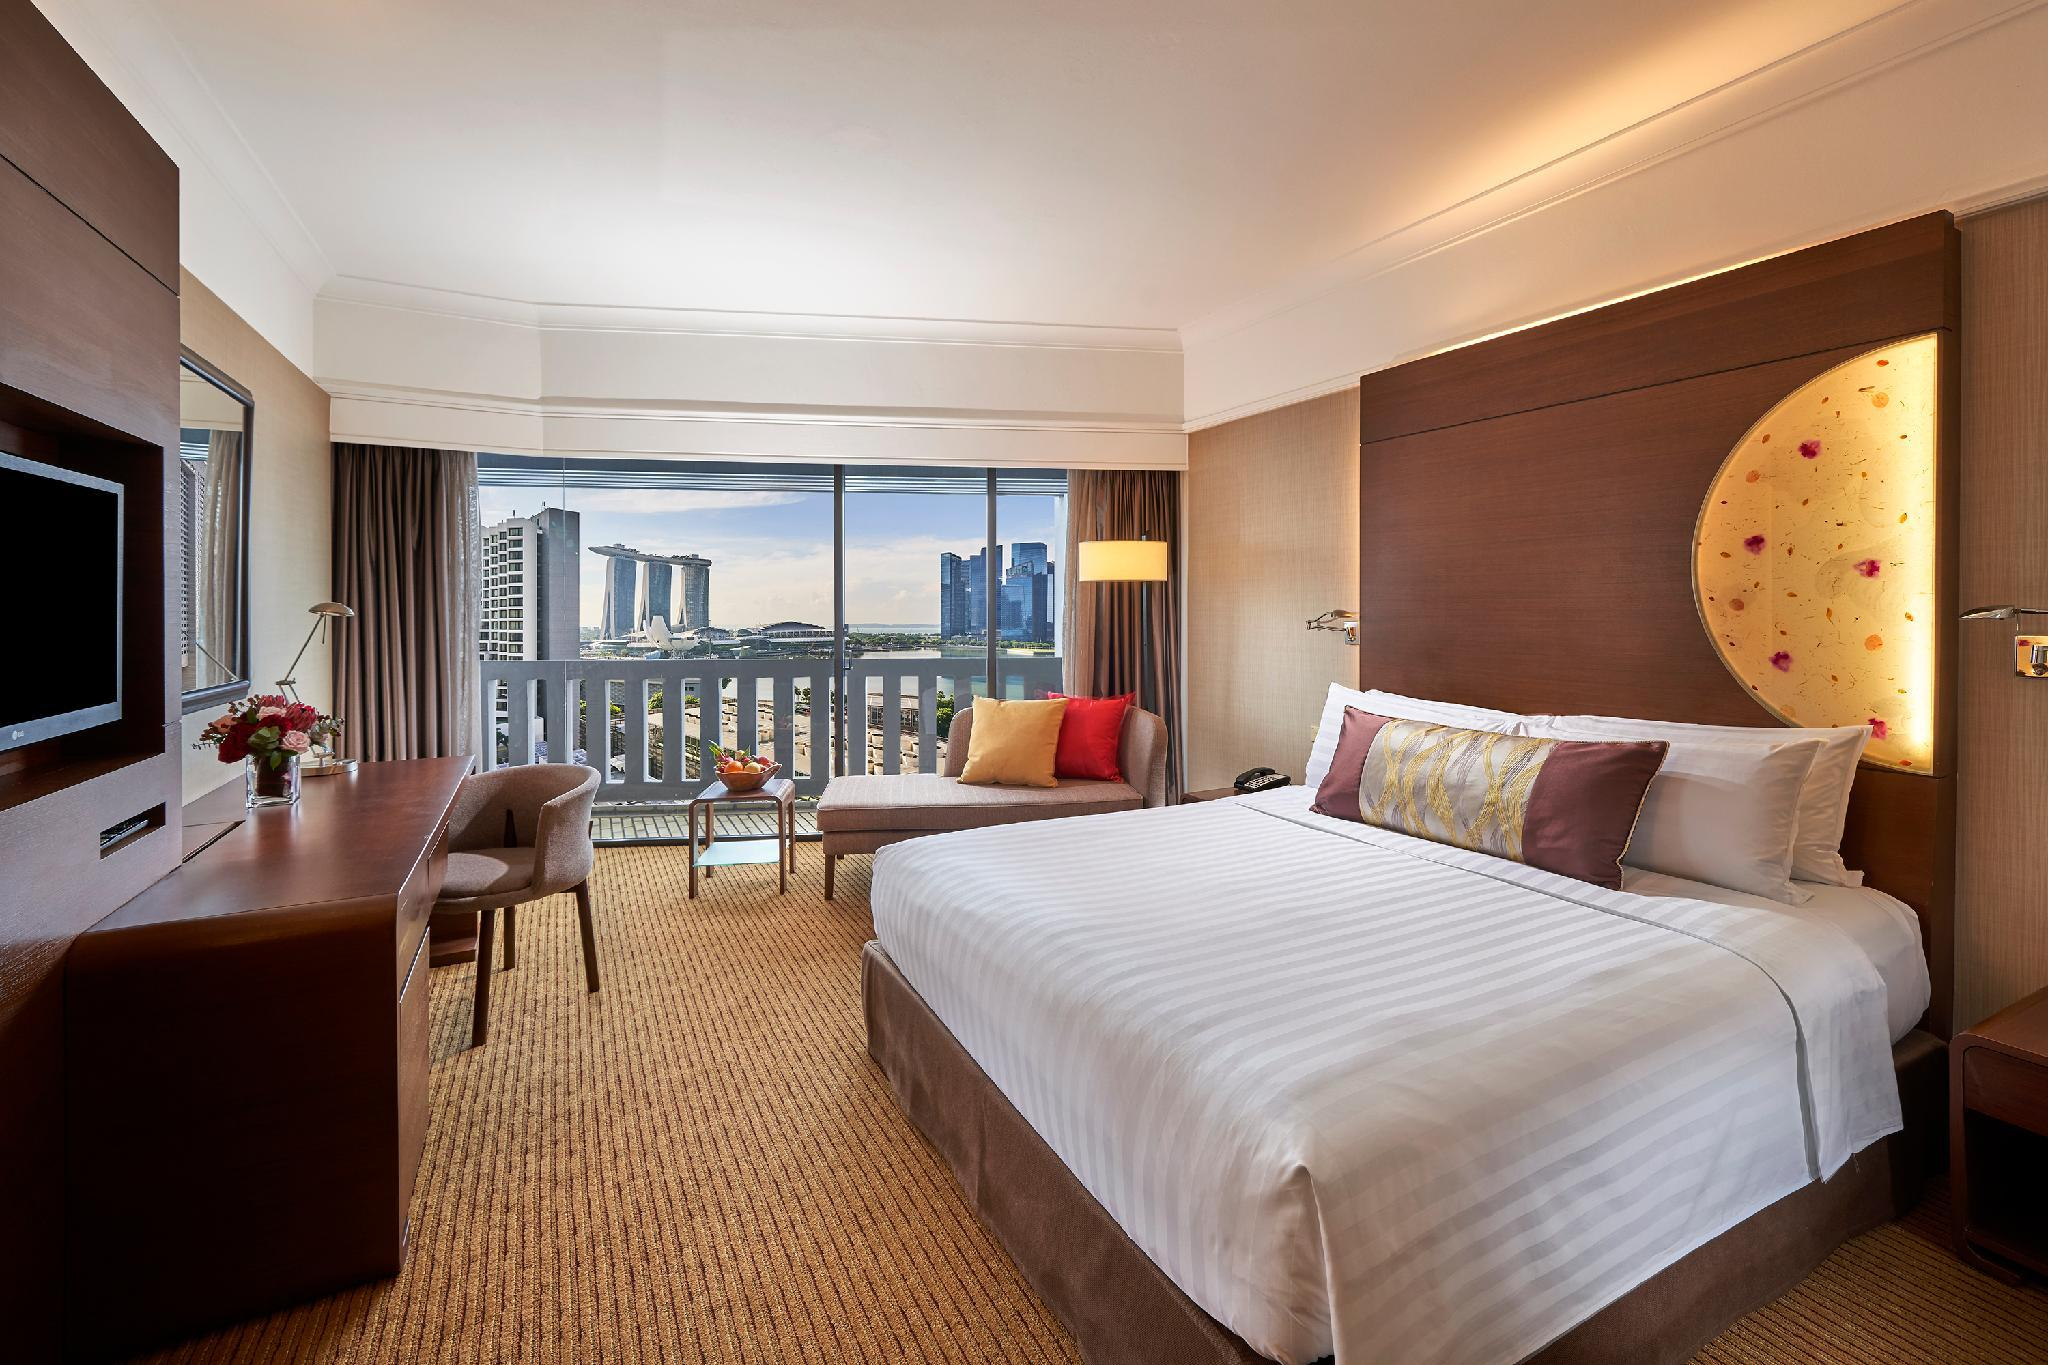 Deluxe Marina Bay Room